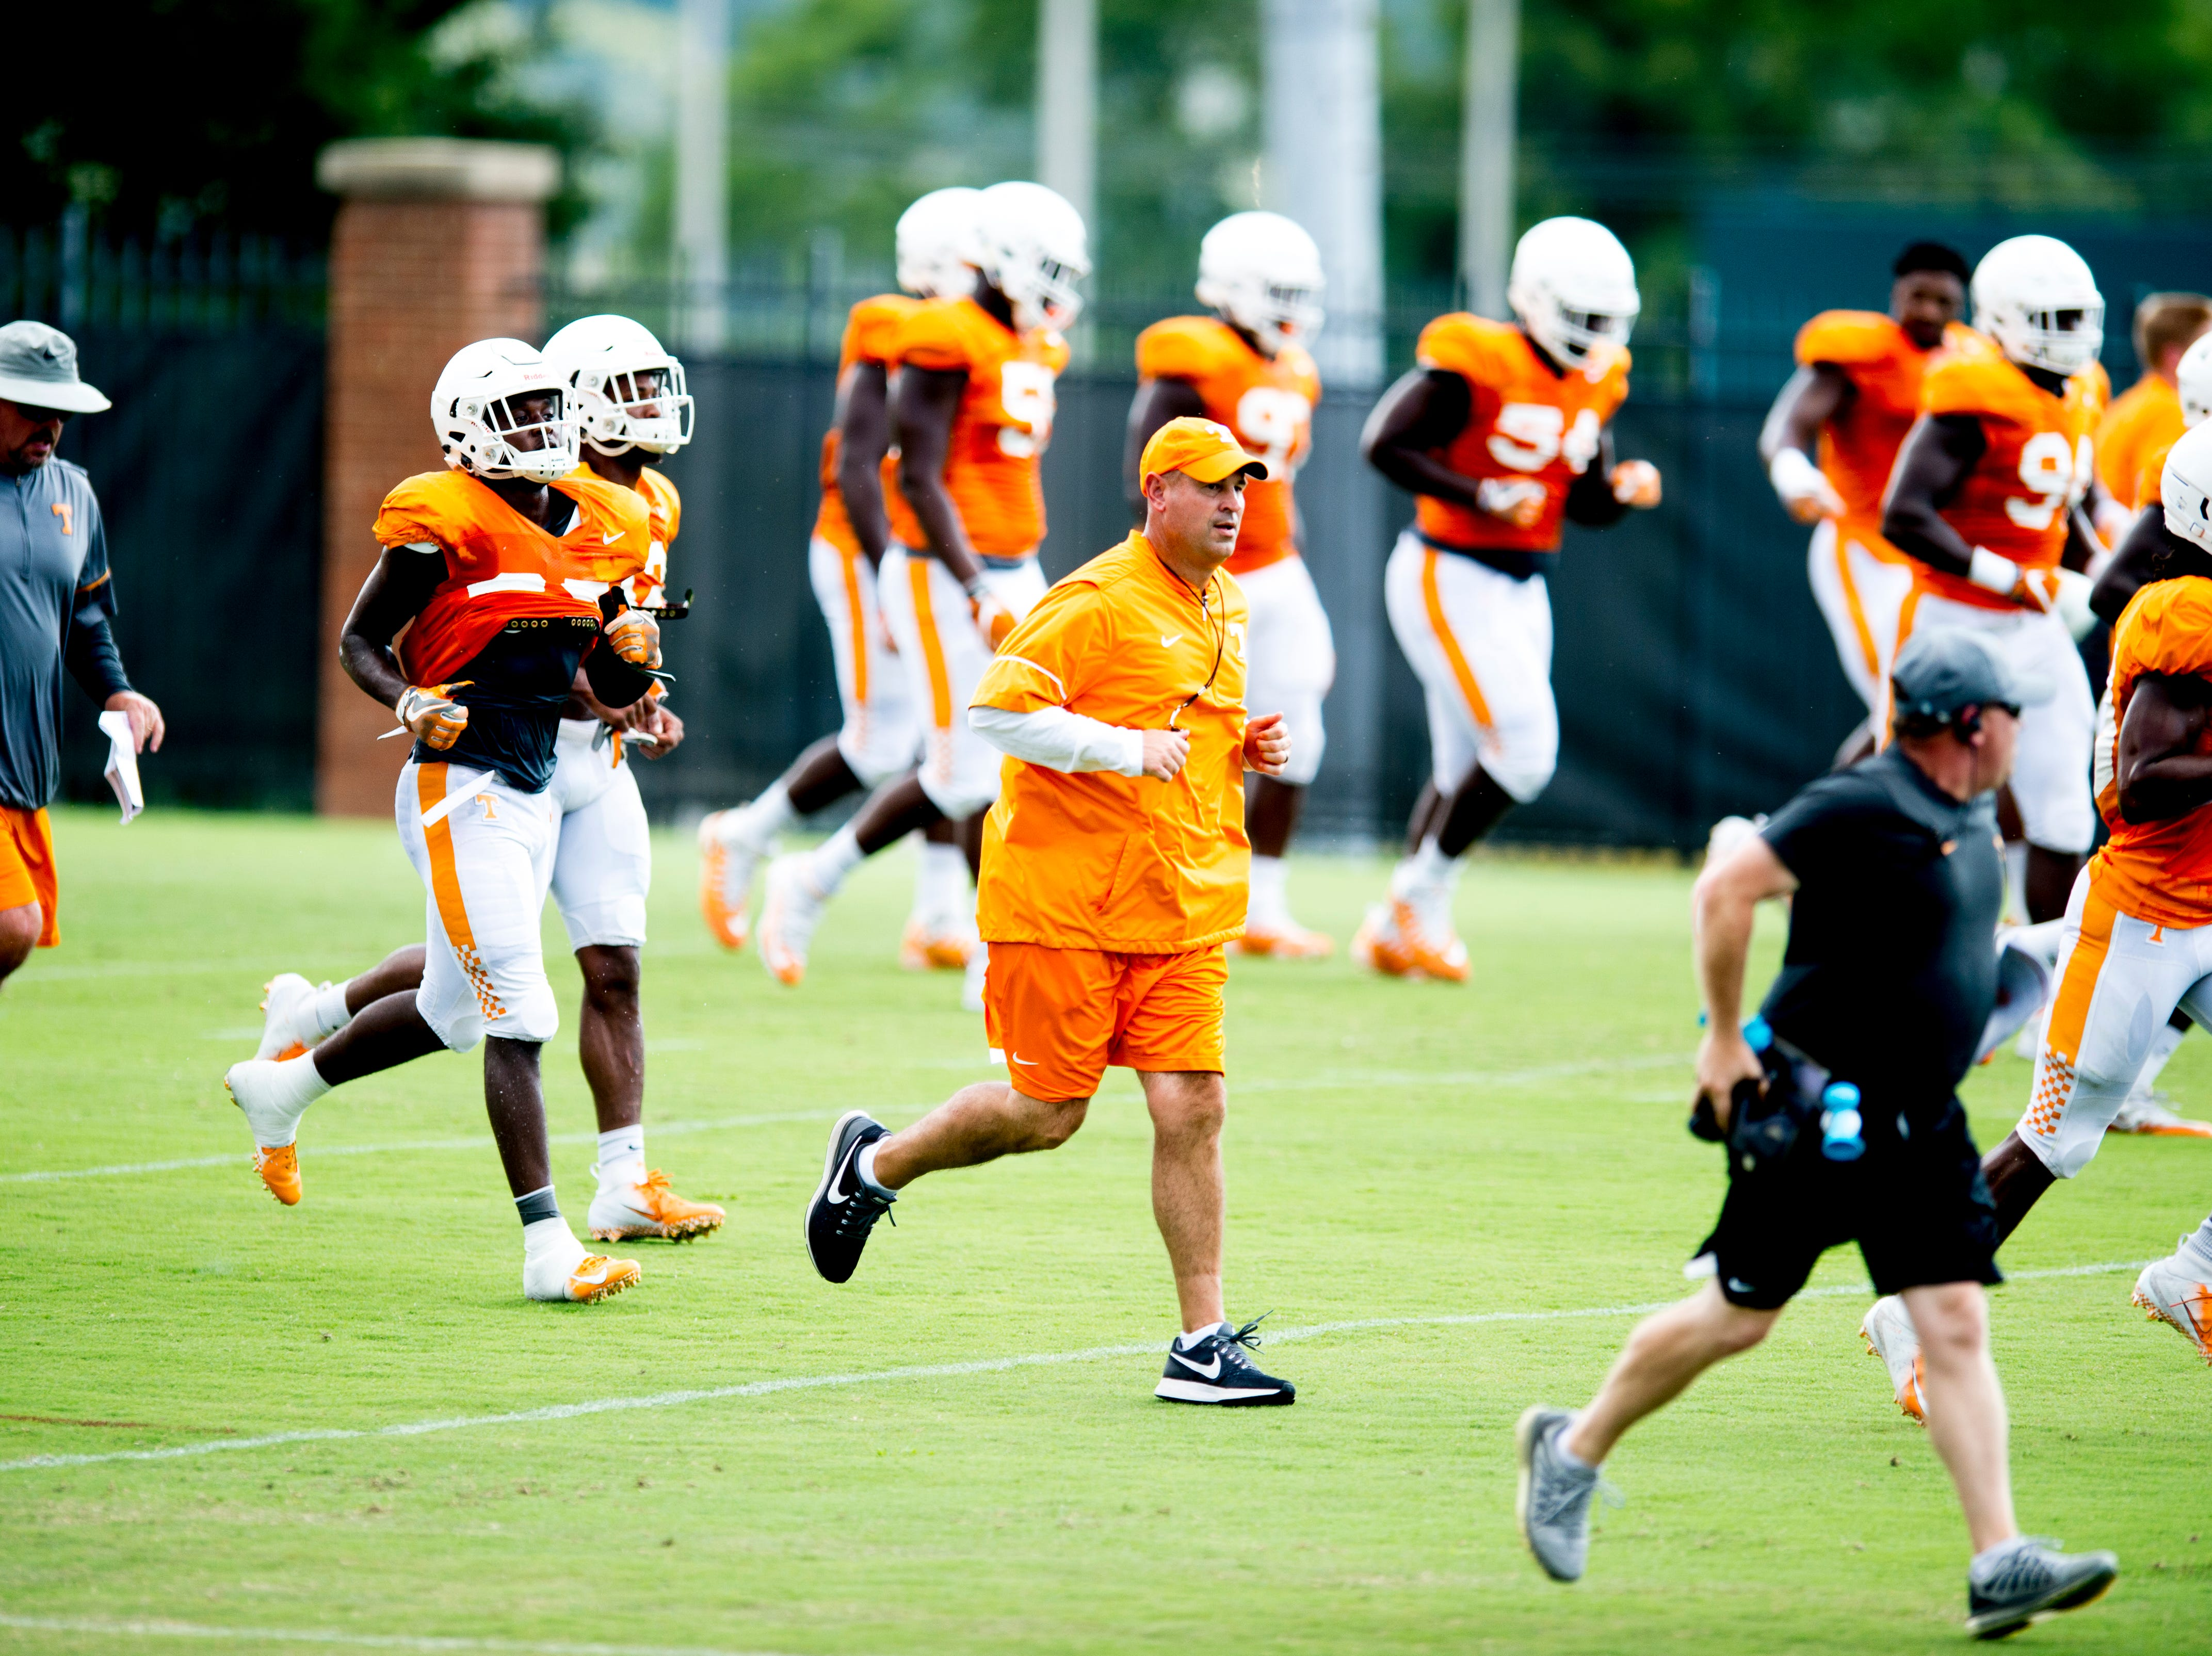 Tennessee Head Coach Jeremy Pruitt runs with players on the field during Tennessee fall football practice at Haslam Field in Knoxville, Tennessee on Wednesday, September 12, 2018.